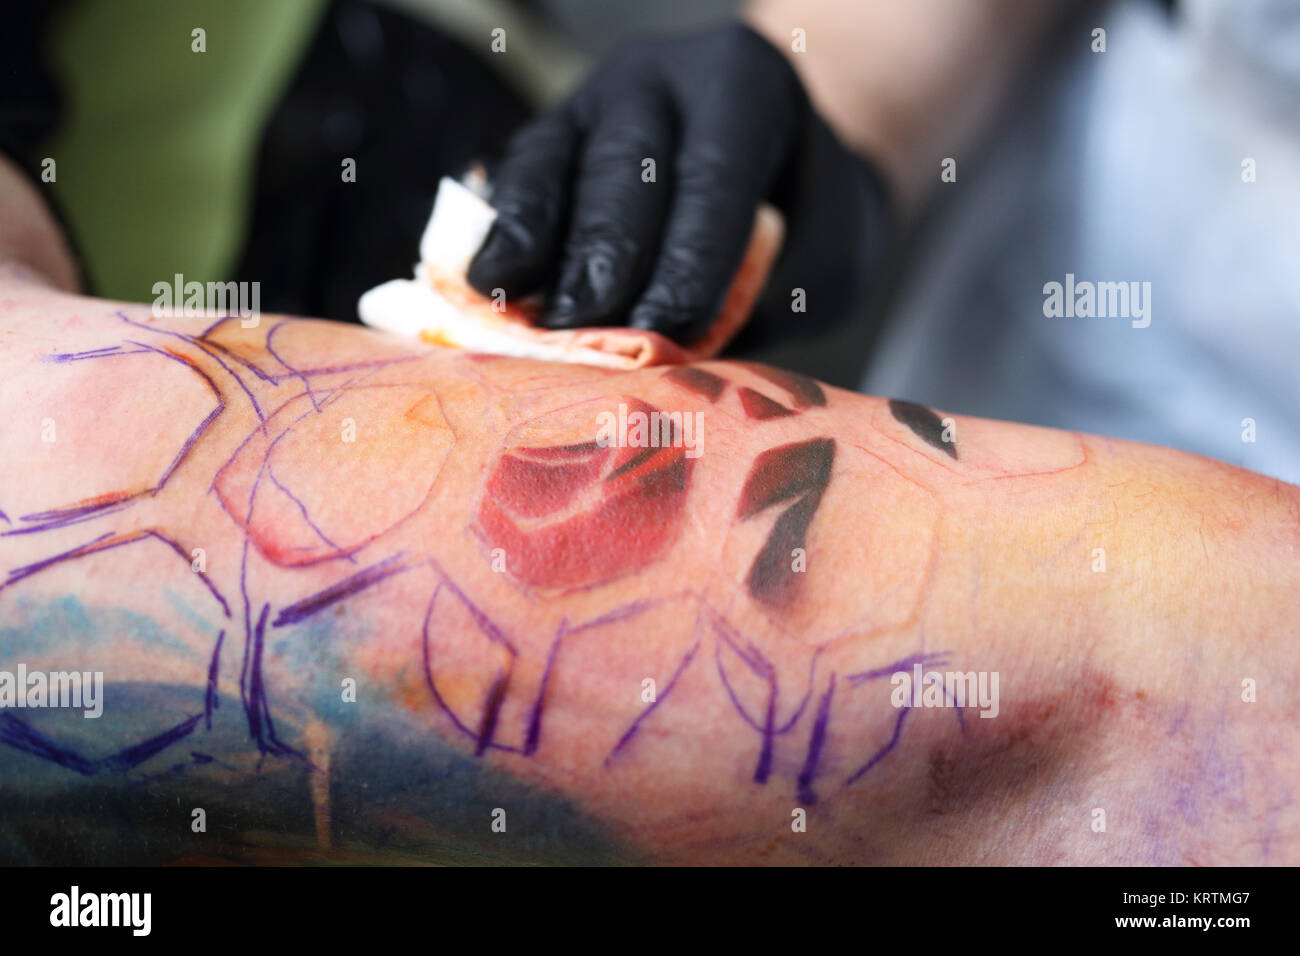 creating a tattoo in a tattoo parlor. Stock Photo